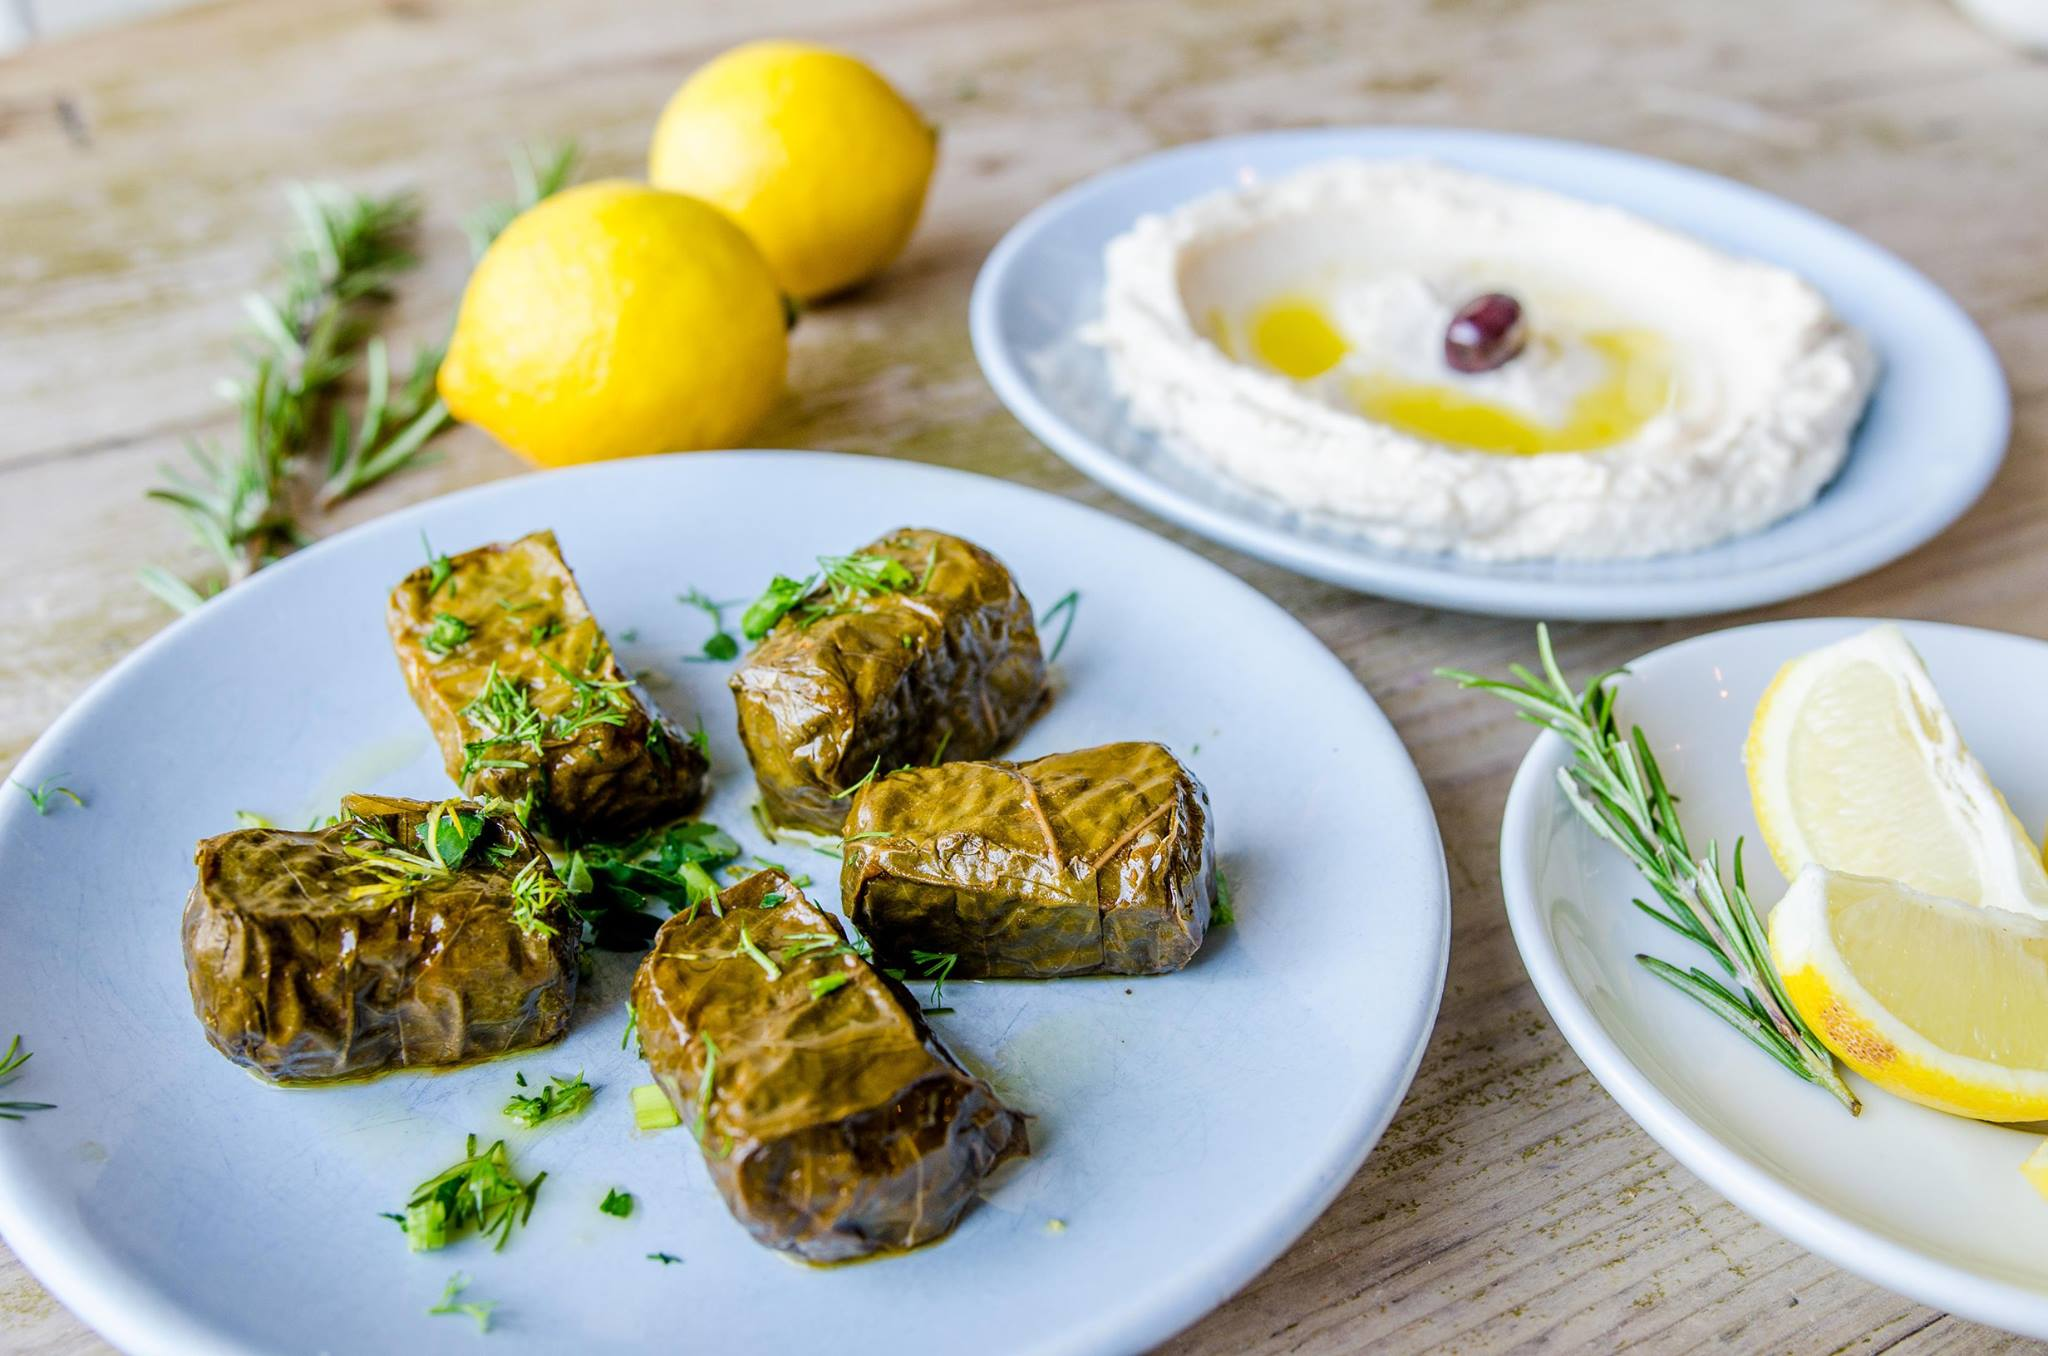 The Real Greek is launching a vegan menu across 15 of its